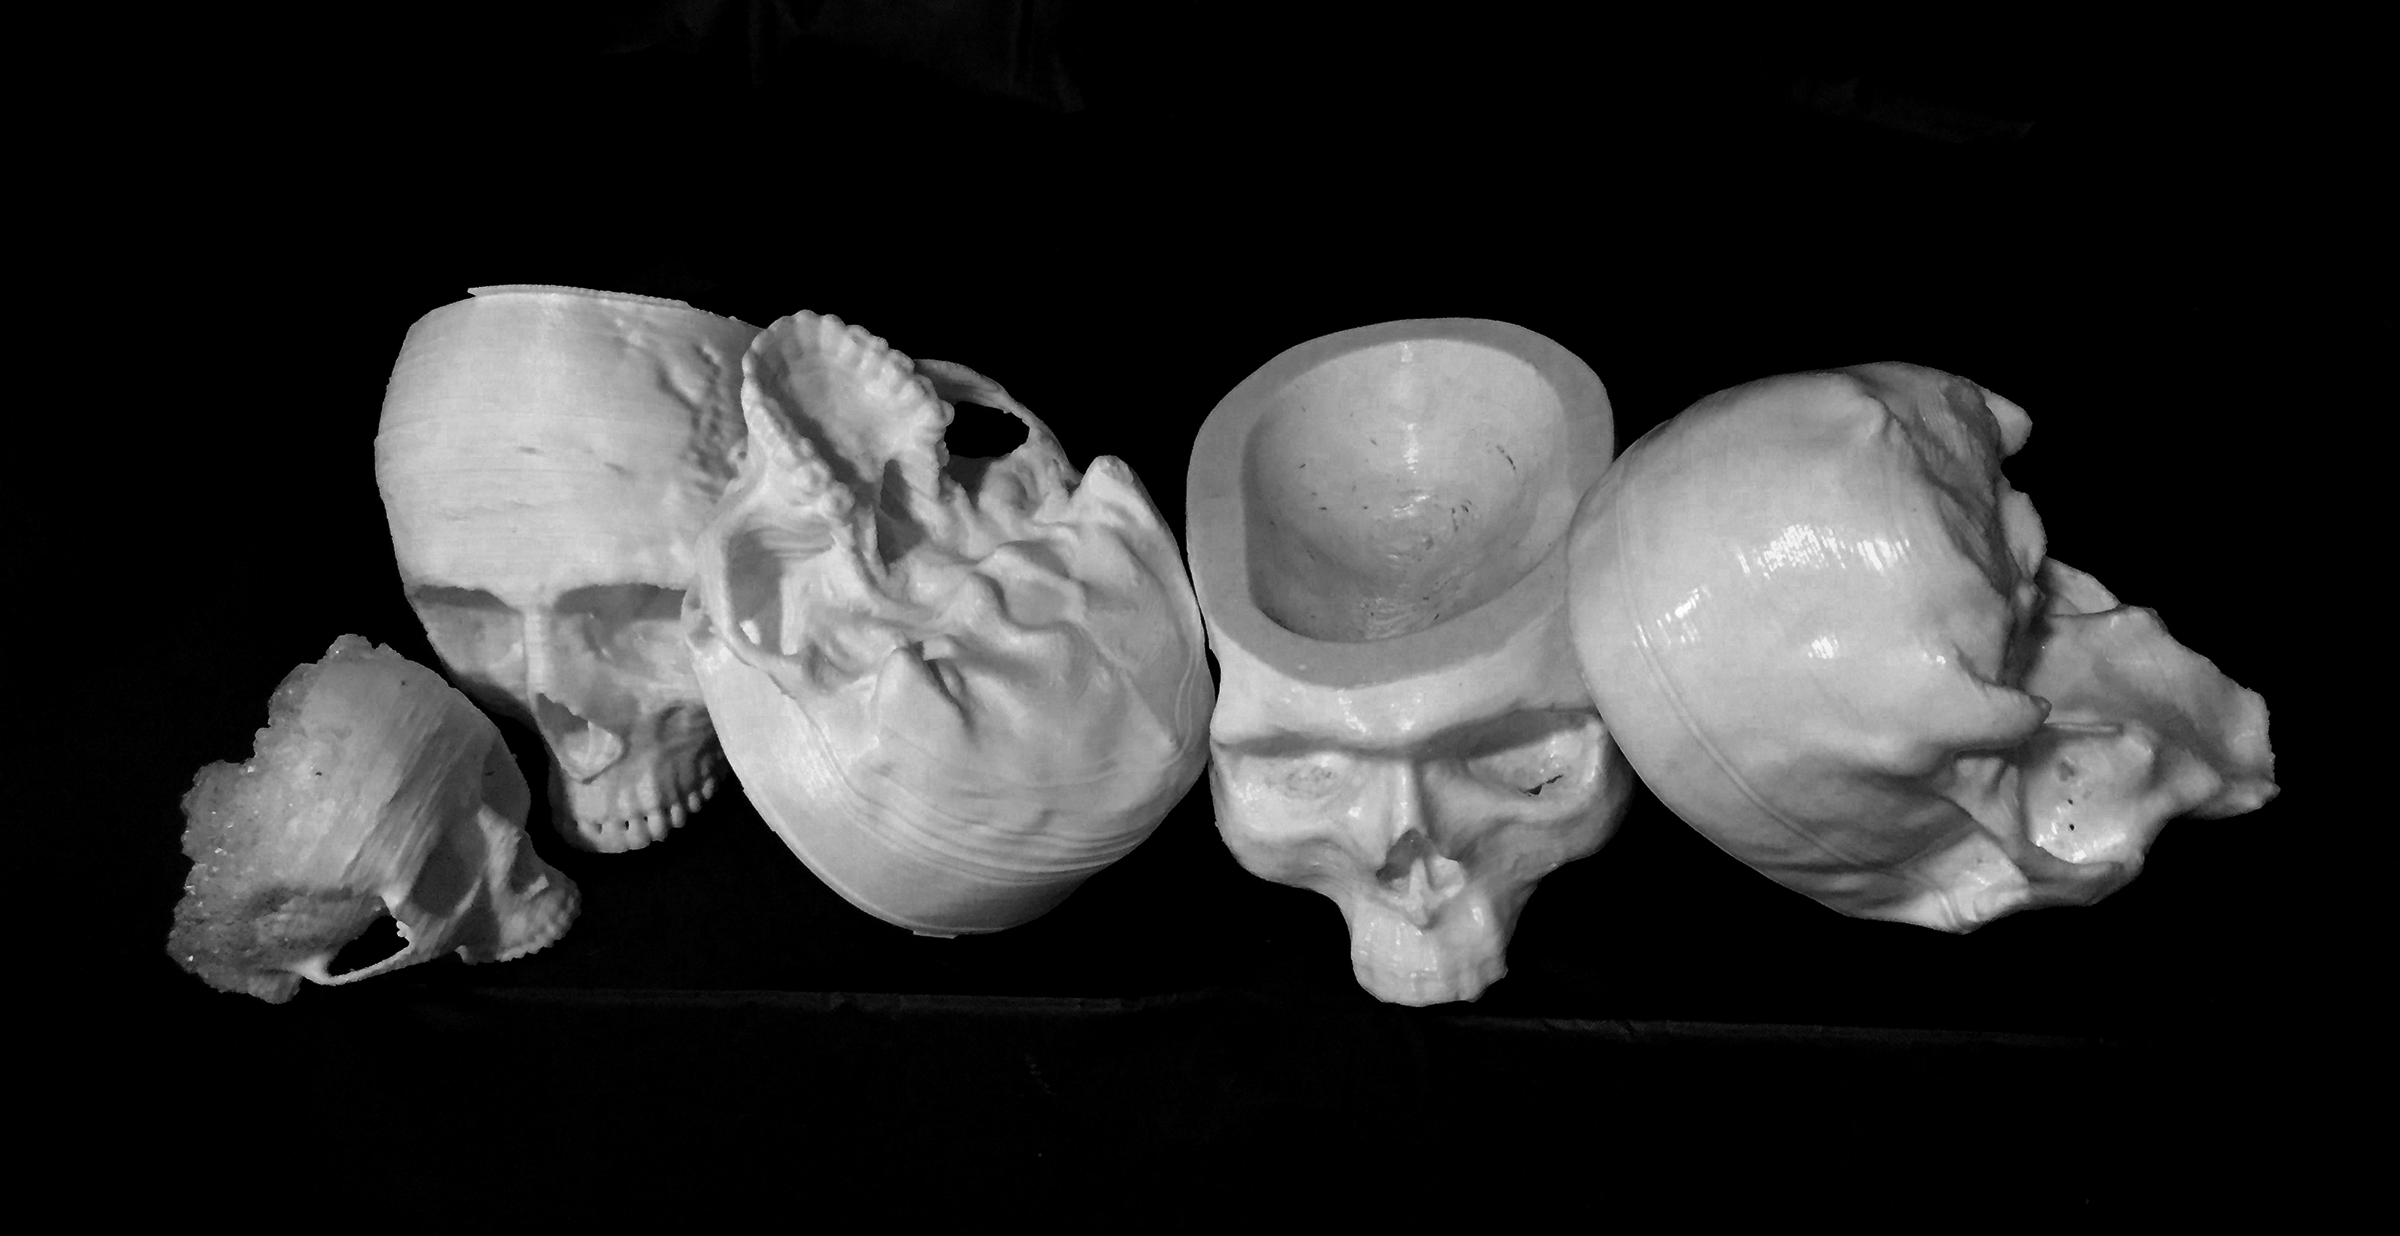 The procession of 3D printed skull prototypes from earliest on the left to latest on the right.